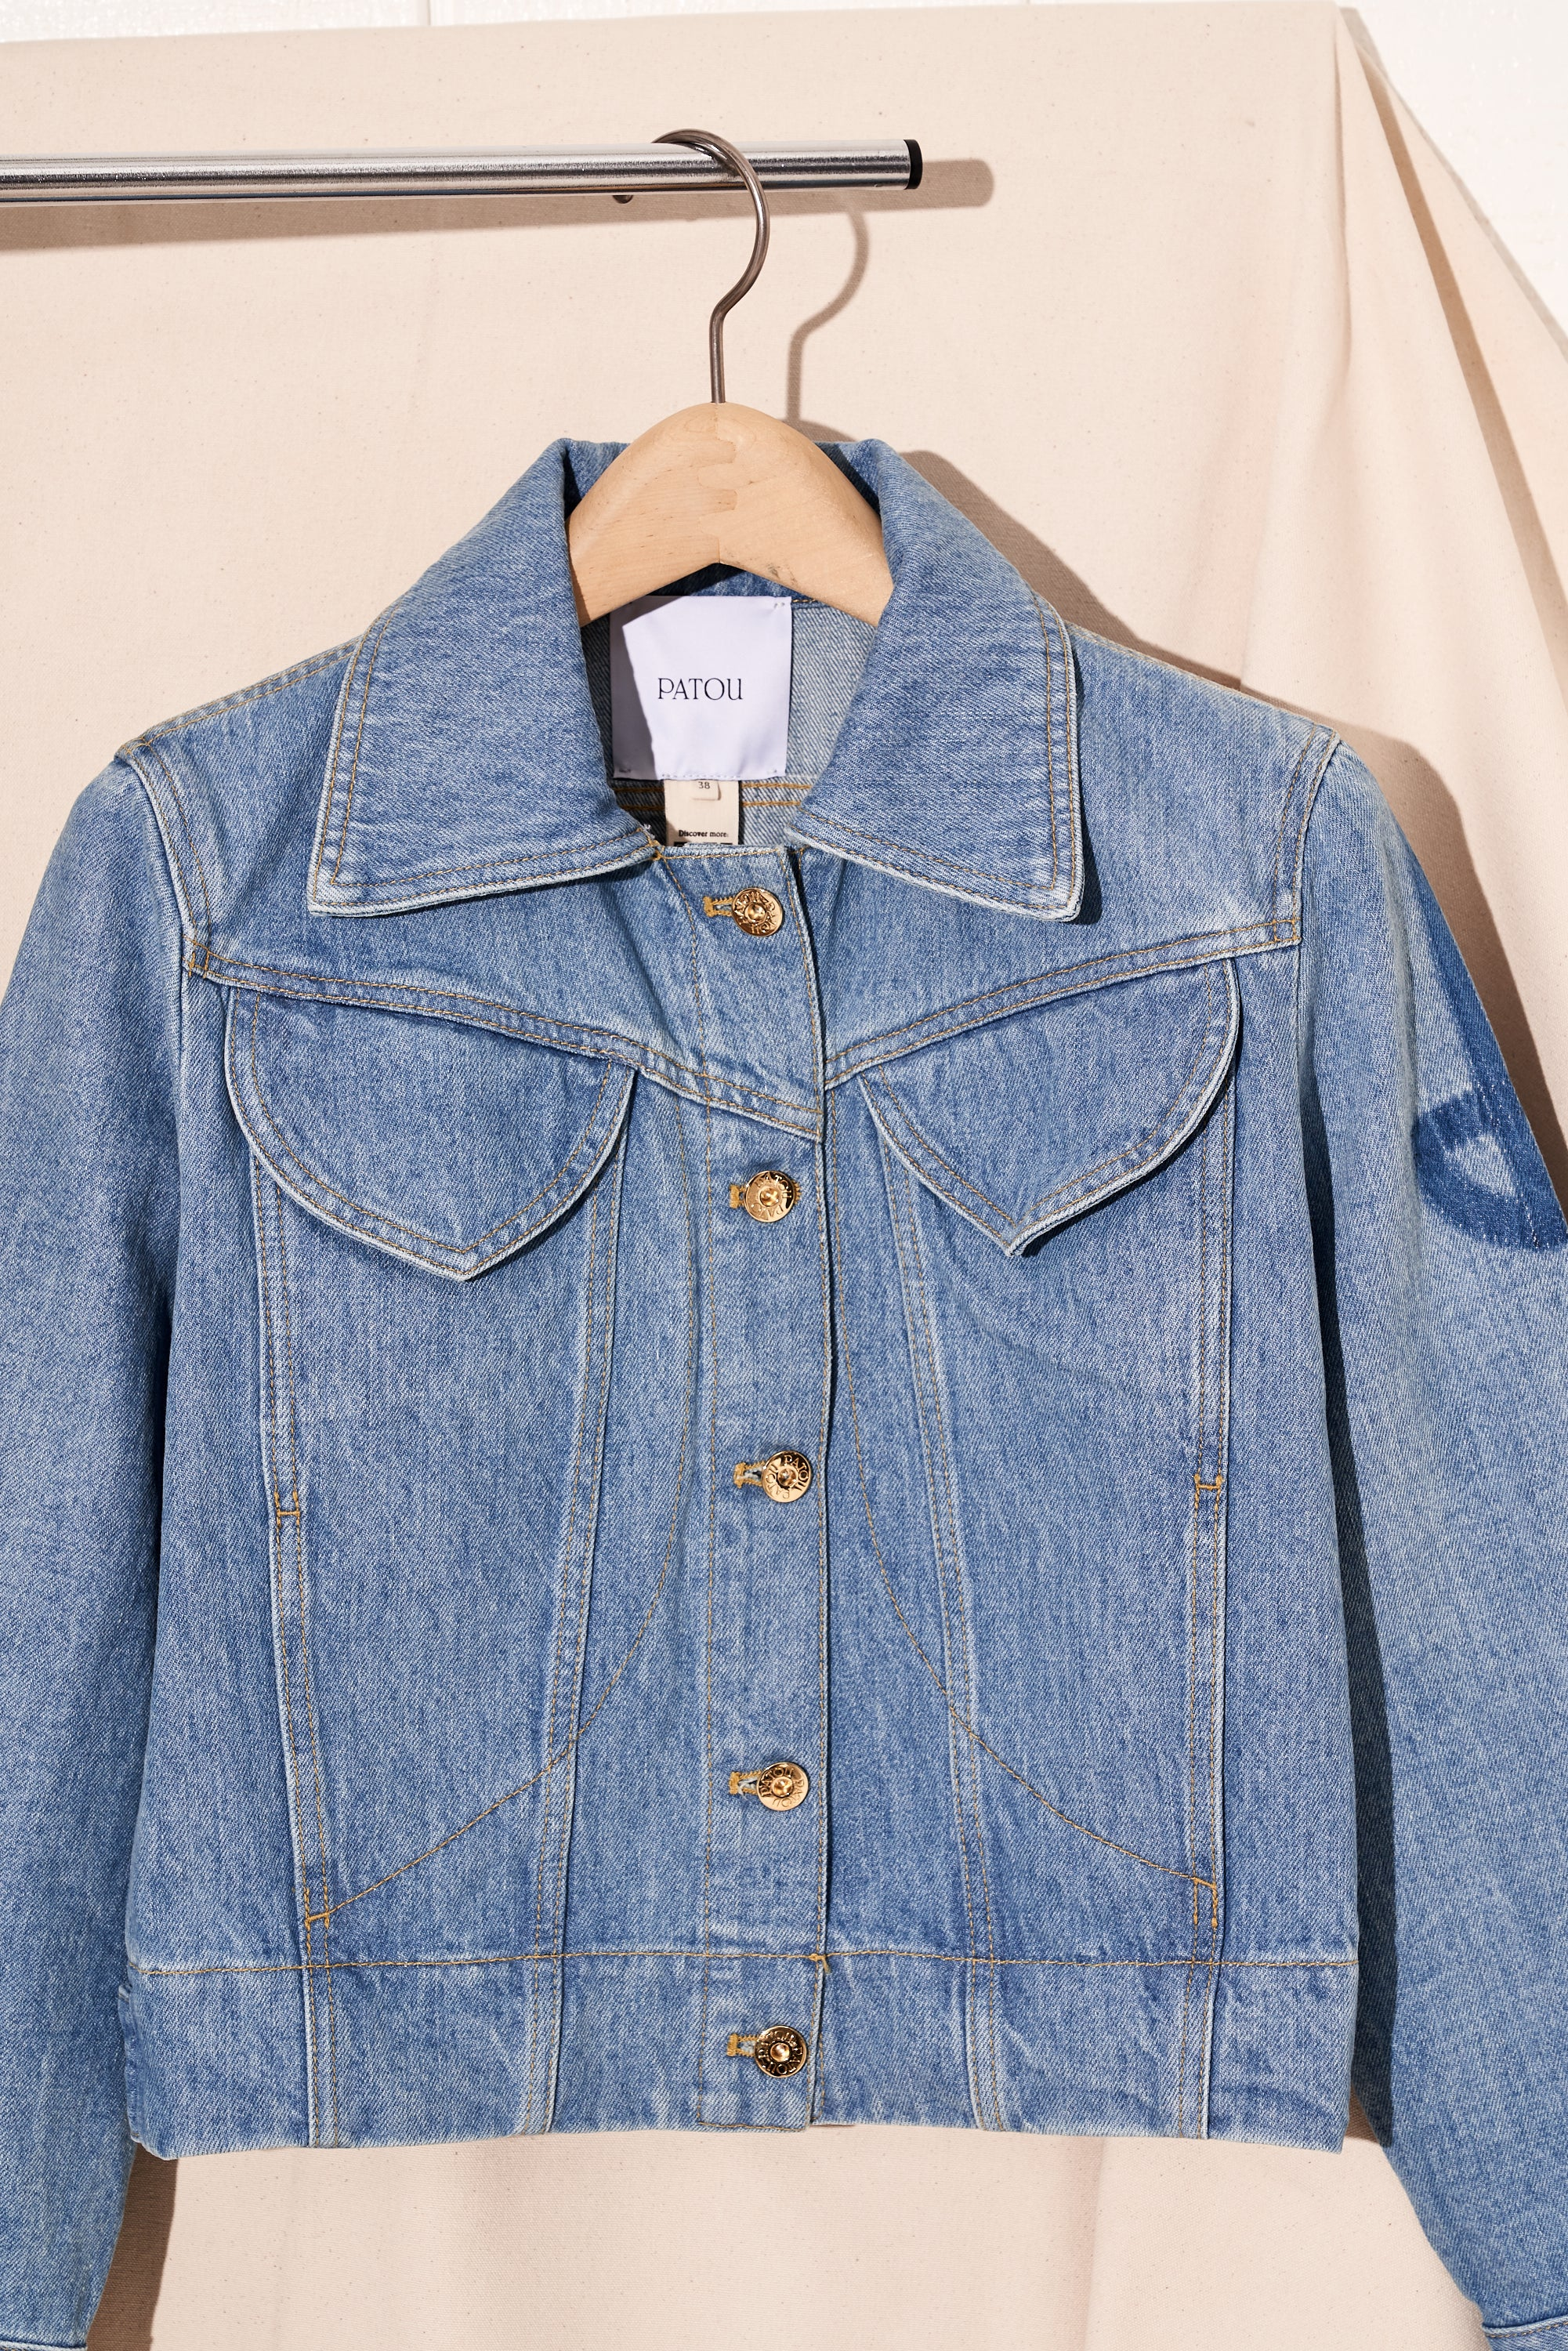 iconic denim jacket in light wash by patou, detail view front